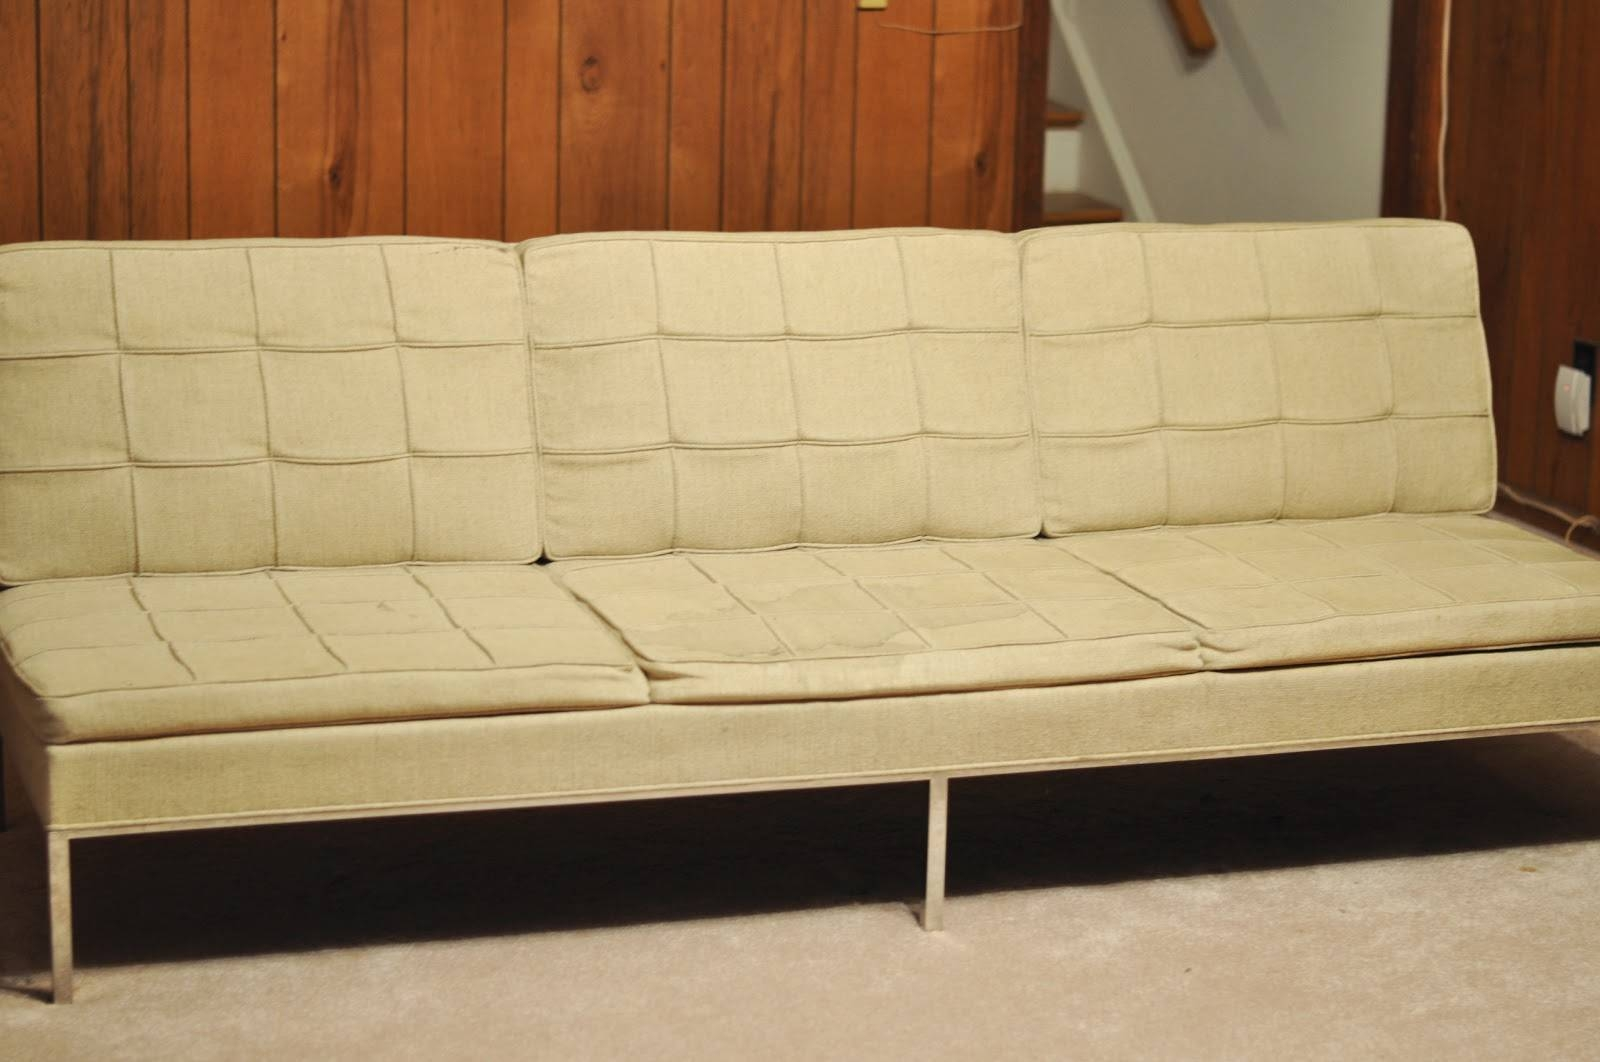 A Treasure In Storage: The Florence Knoll Sofa Comes Home | The with Florence Large Sofas (Image 5 of 30)